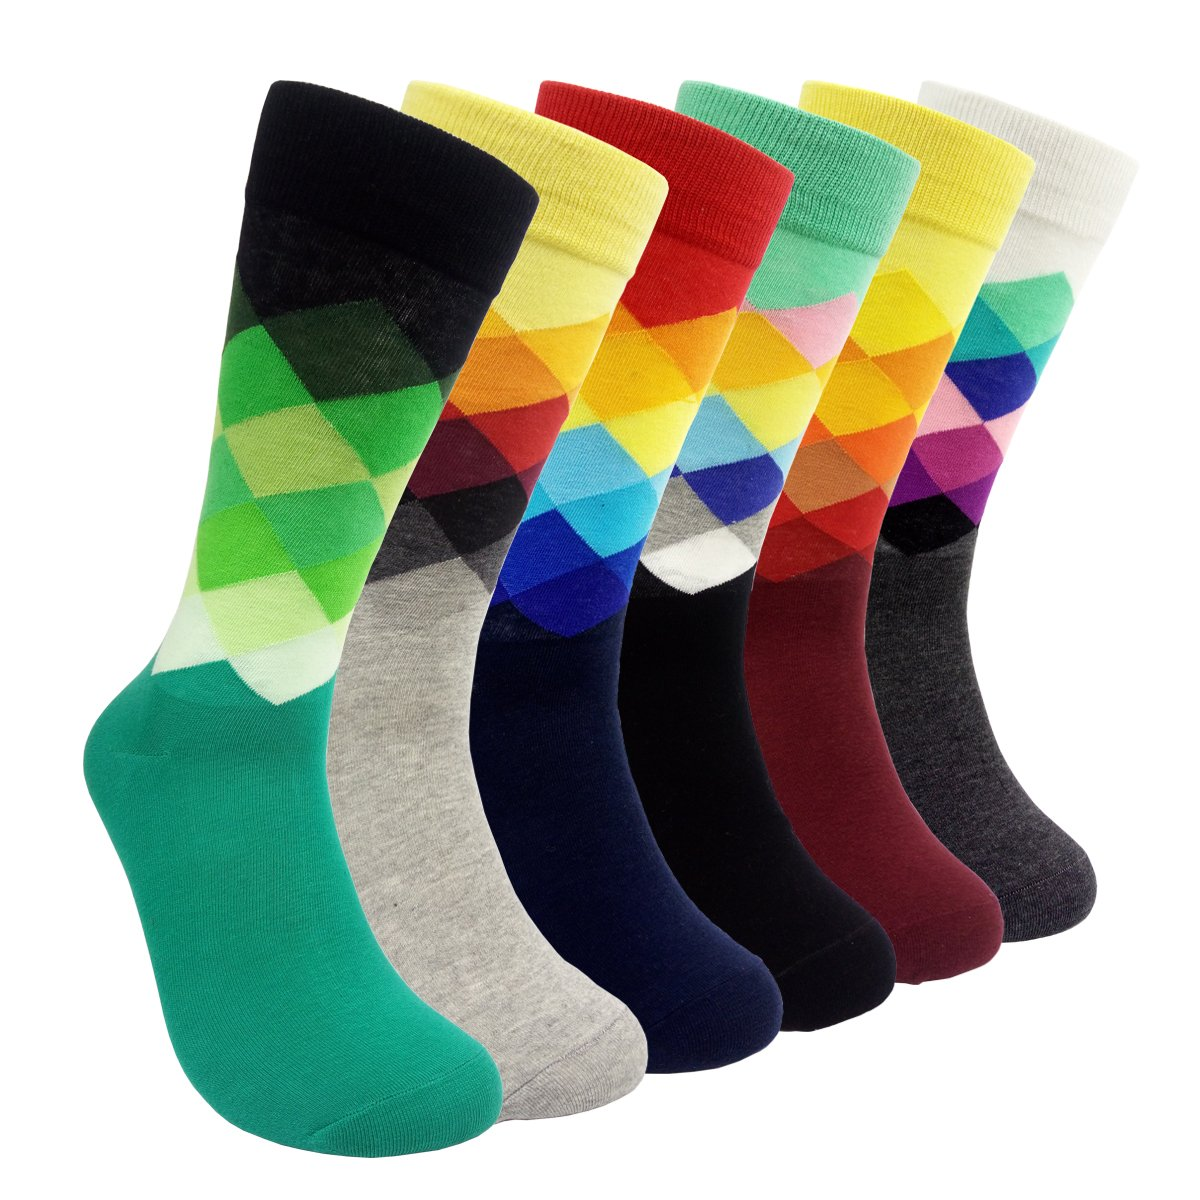 Mens Colorful Dress Socks Argyle - HSELL Men Multicolored Argyle Pattern Fashionable Fun Crew Socks MS026